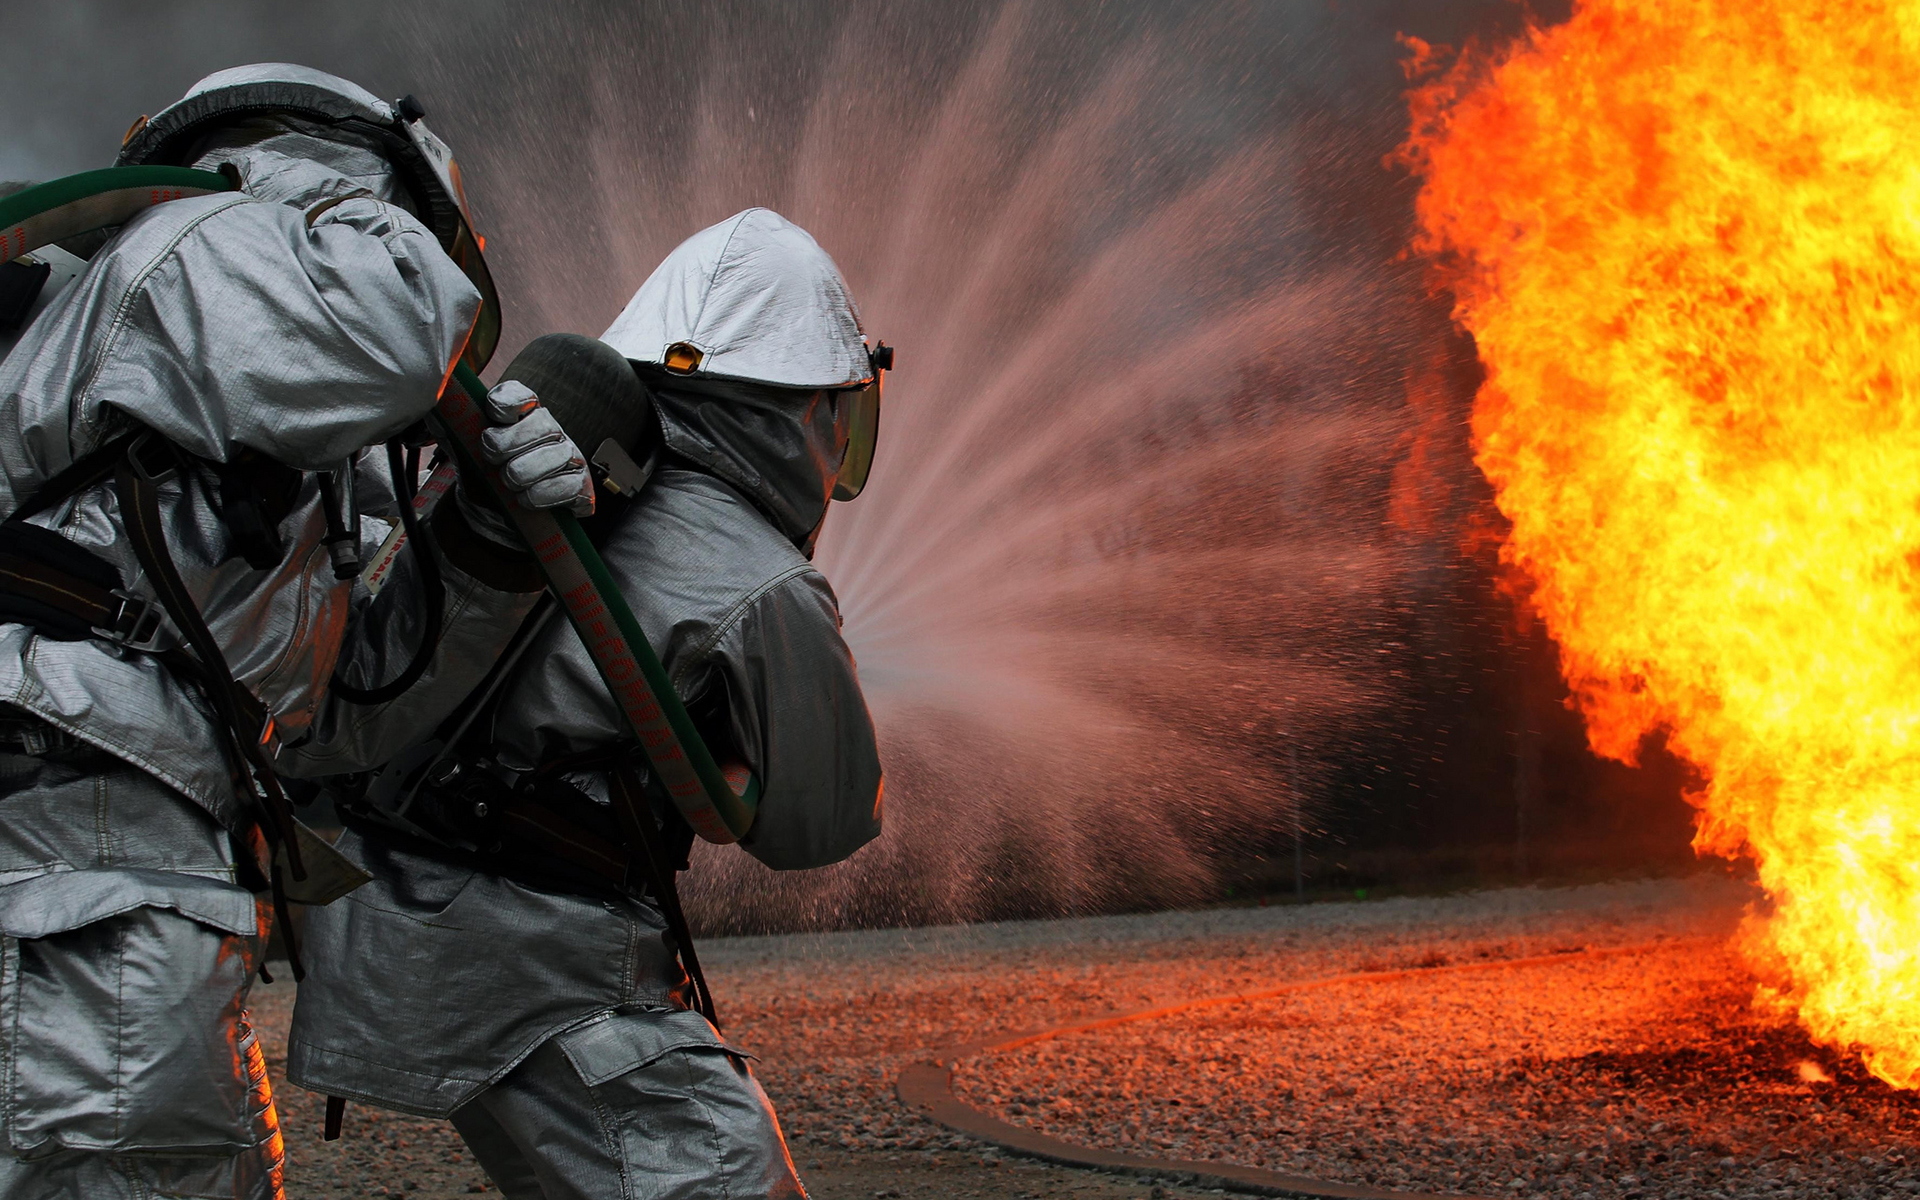 Firefighter Desktop Wallpapers HD Backgrounds Of Your 1920x1200